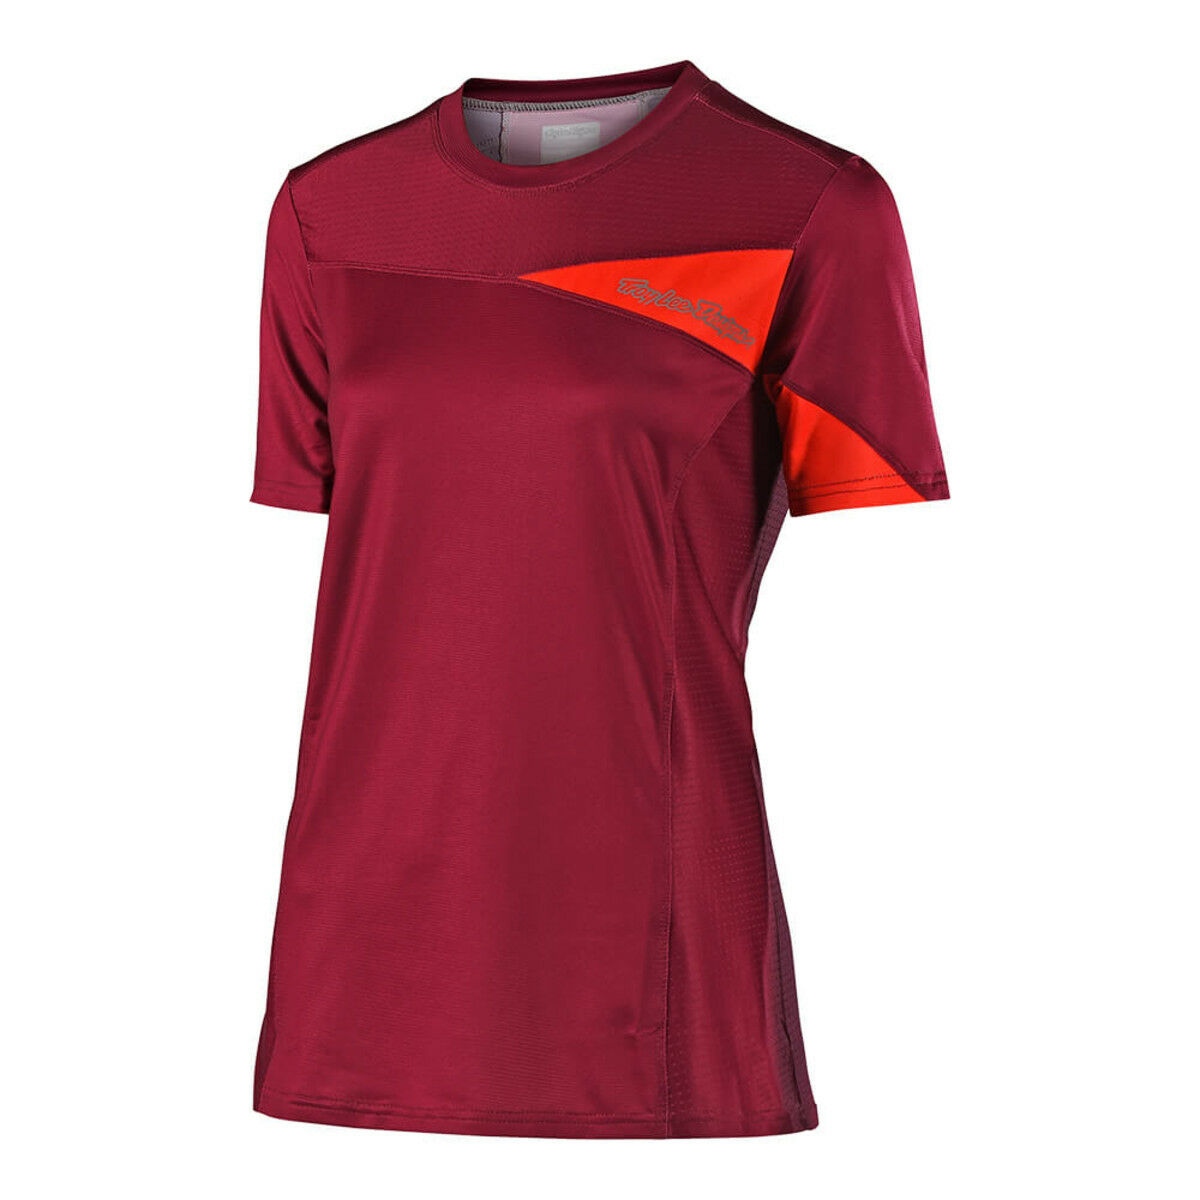 NEW 2018 Troy Lee Designs Bike Skyline SS Jersey Burgundy (RED) Womens SMALL